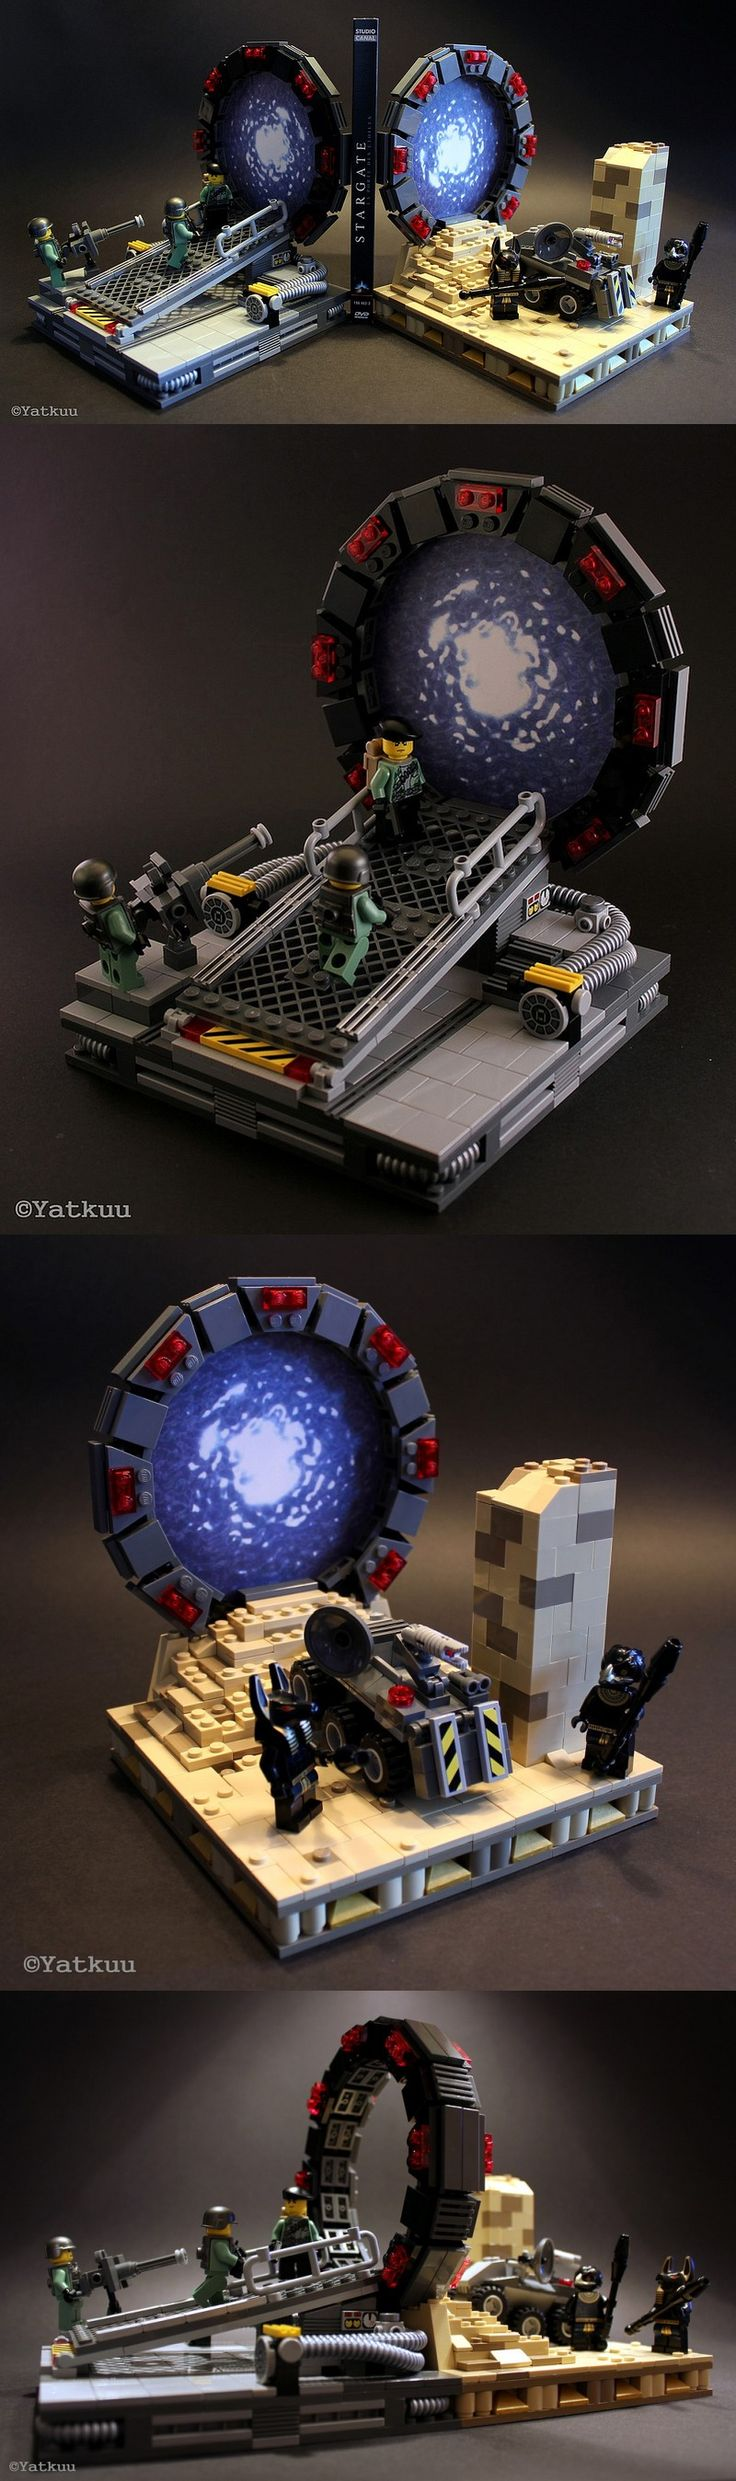 LEGO Stargate bookends OMG! // LEGO Jafa! My life is complete...